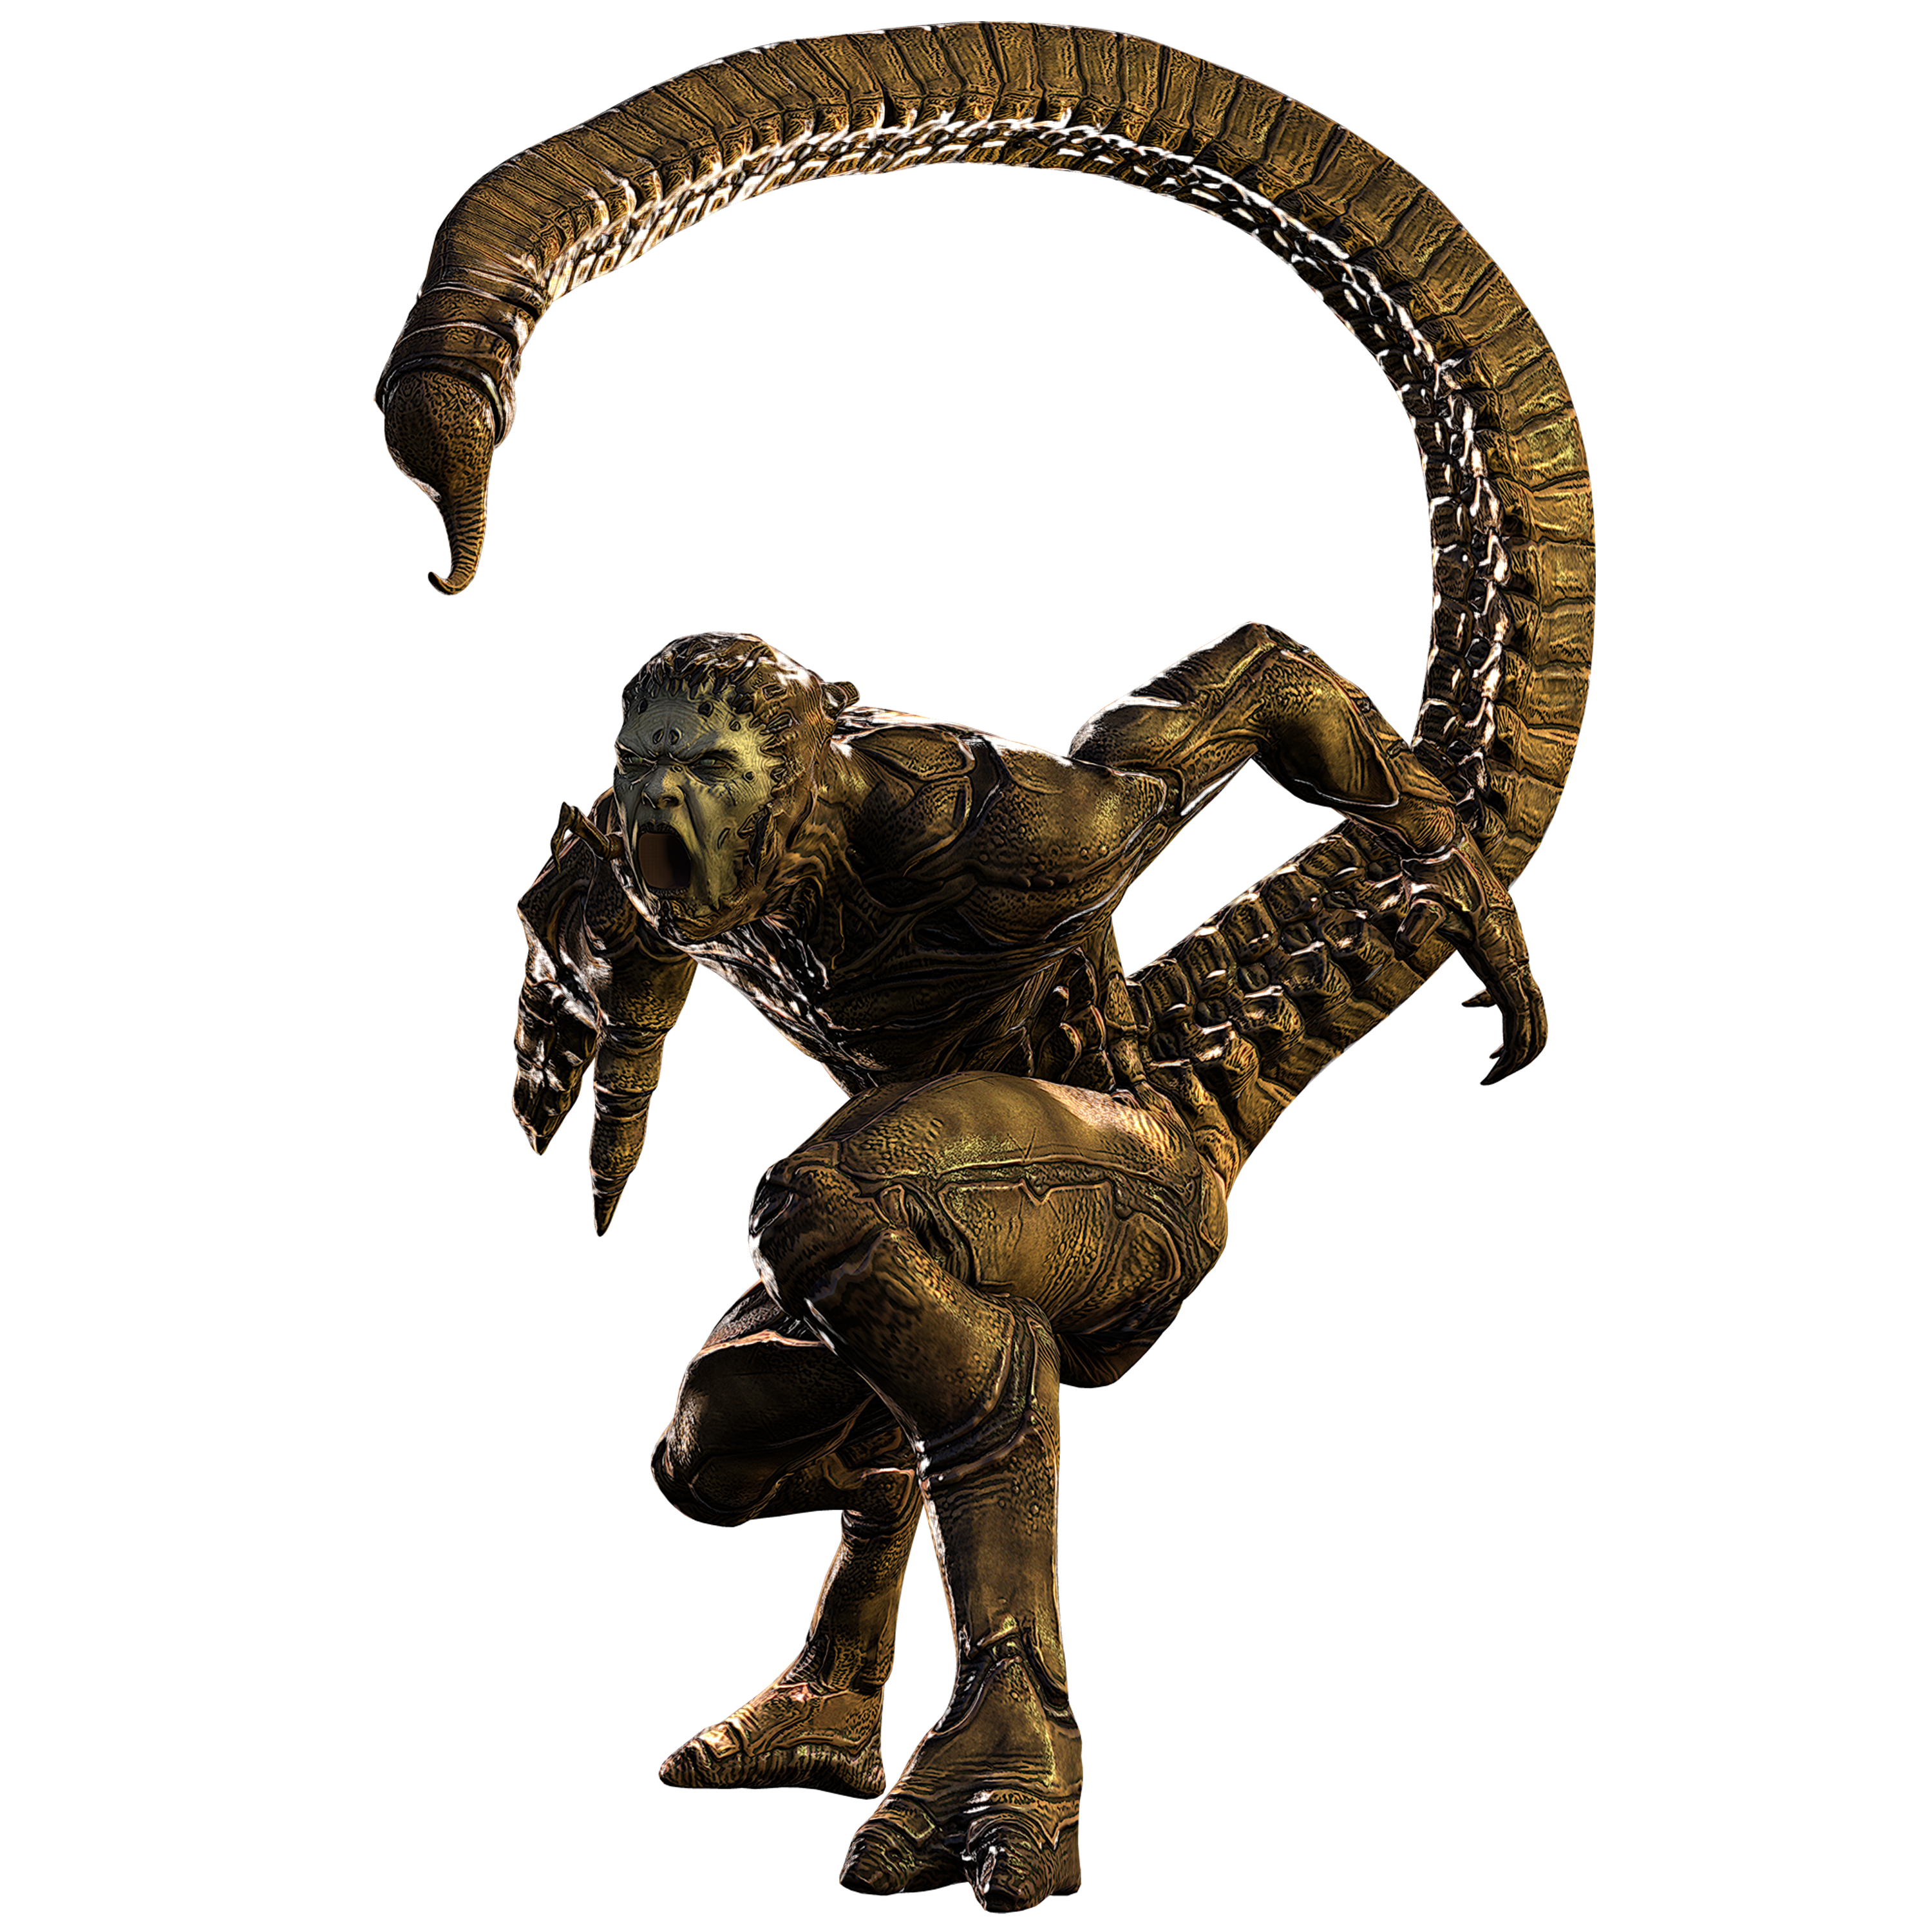 Marvel scorpion png. Video game timeline amazing